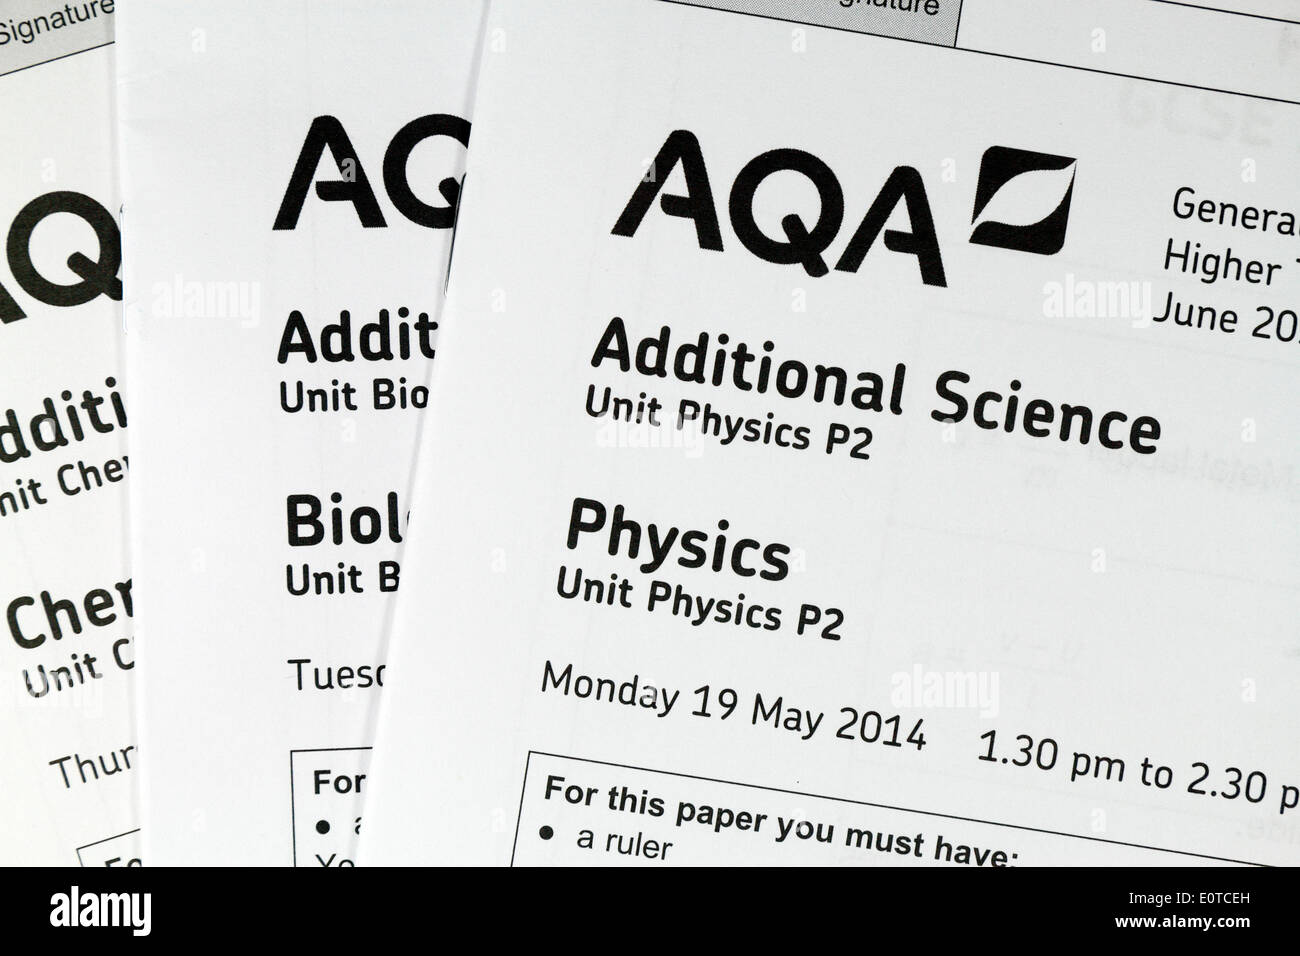 aqa biology past papers online Aqa a-level chemistry past papers we have put together a comprehensive list of past papers for all of the aqa a-level chemistry exams use these to practice your exam question answers and highlight revision topics you need to work on exam board exam  a-level biology revision.